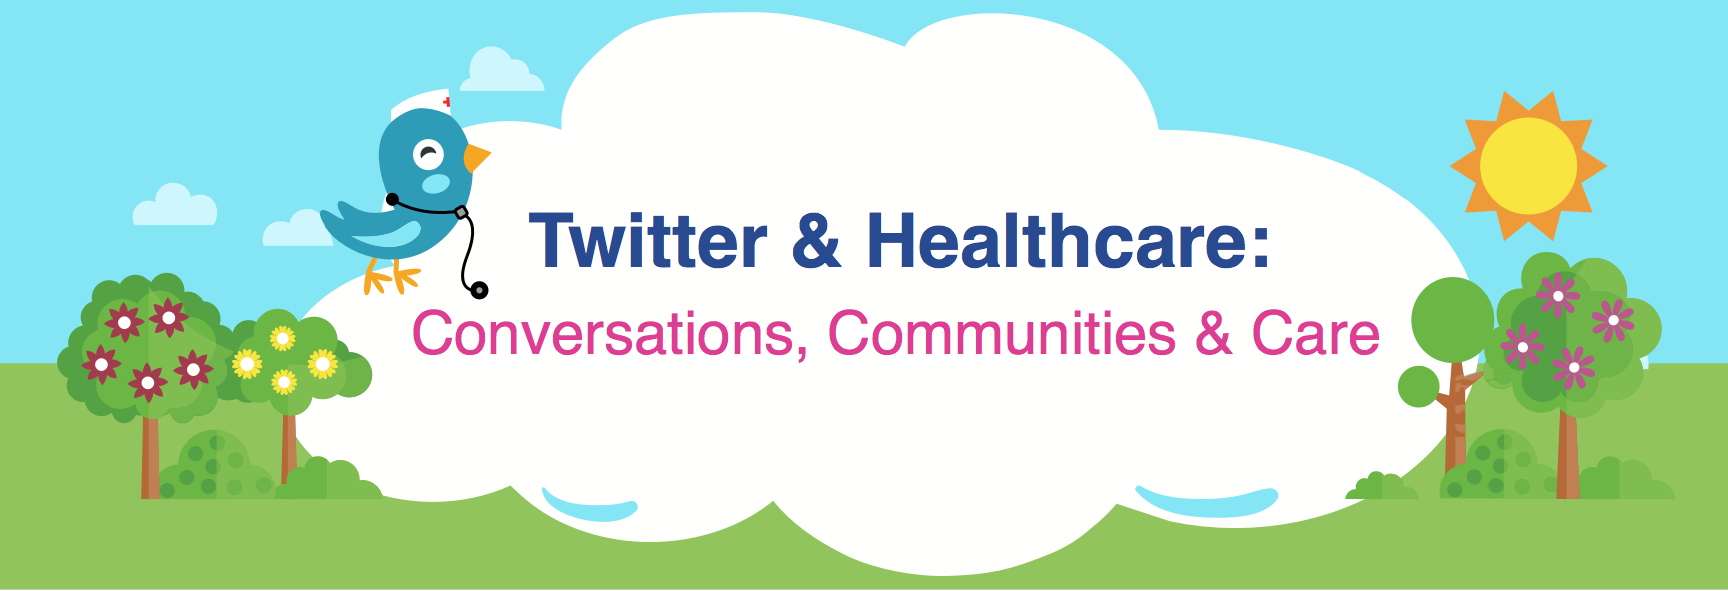 role of twitter in healthcare